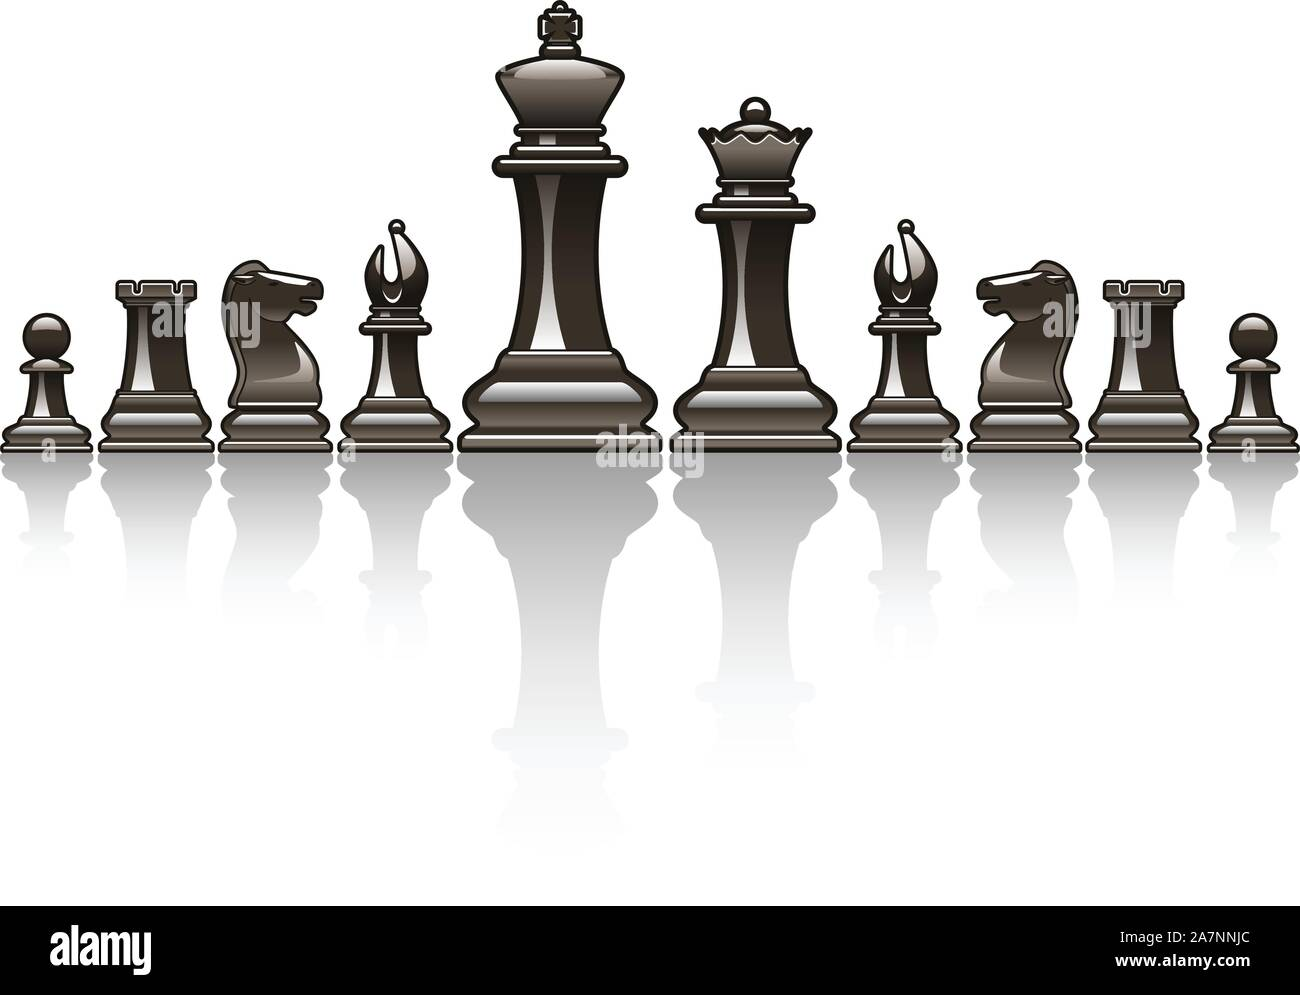 Black Chess pieces vector icon illustrations Stock Vector